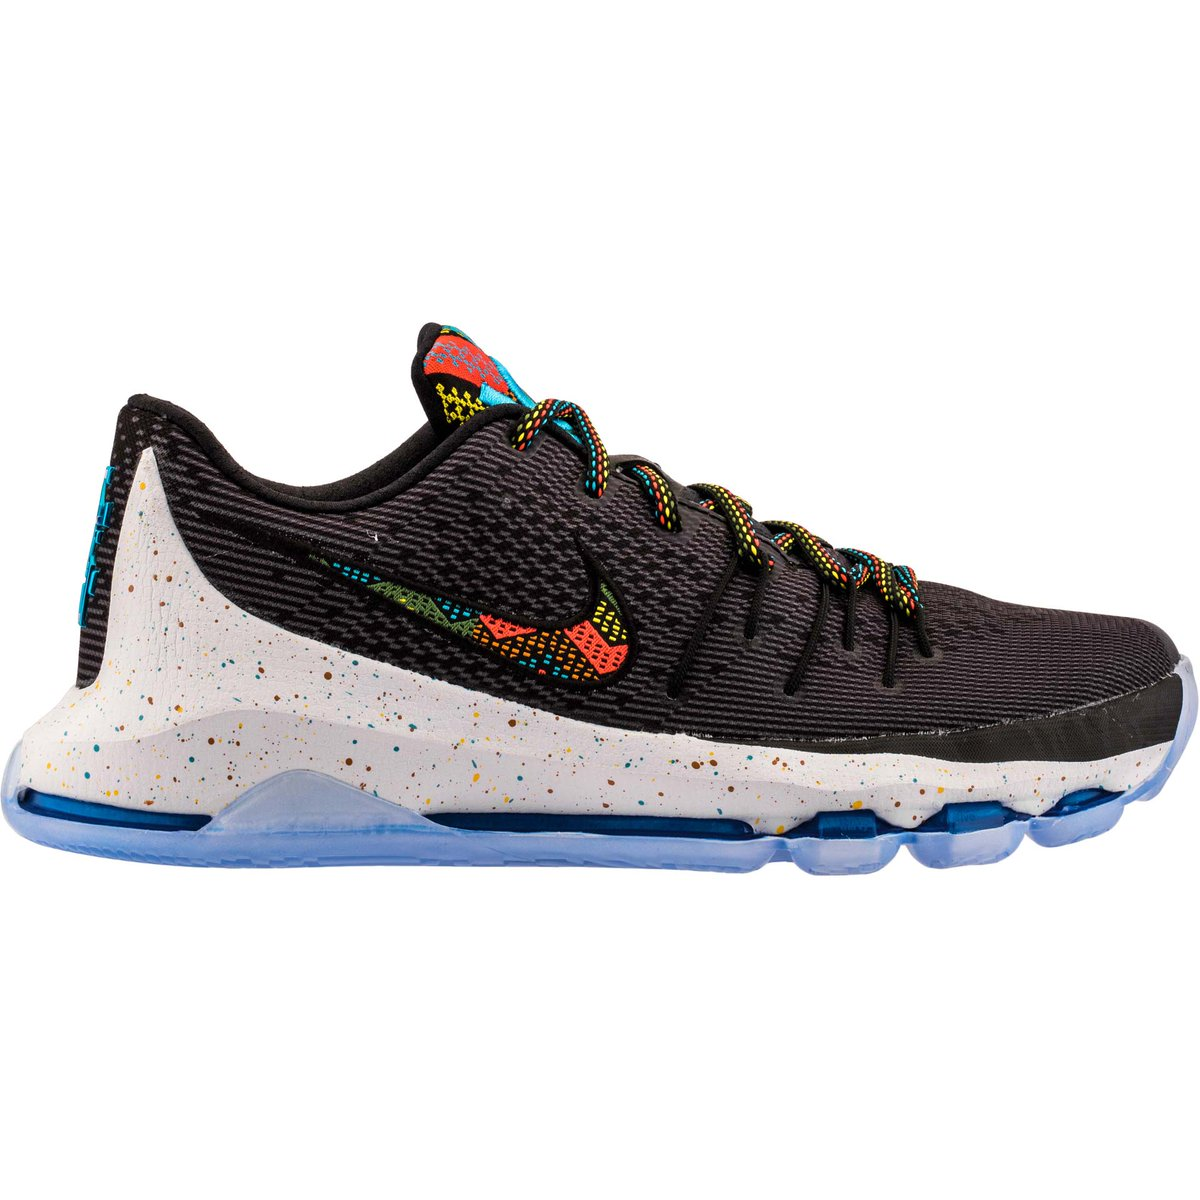 1d5413a41c8a the grade school nike kd8 bhm is out now